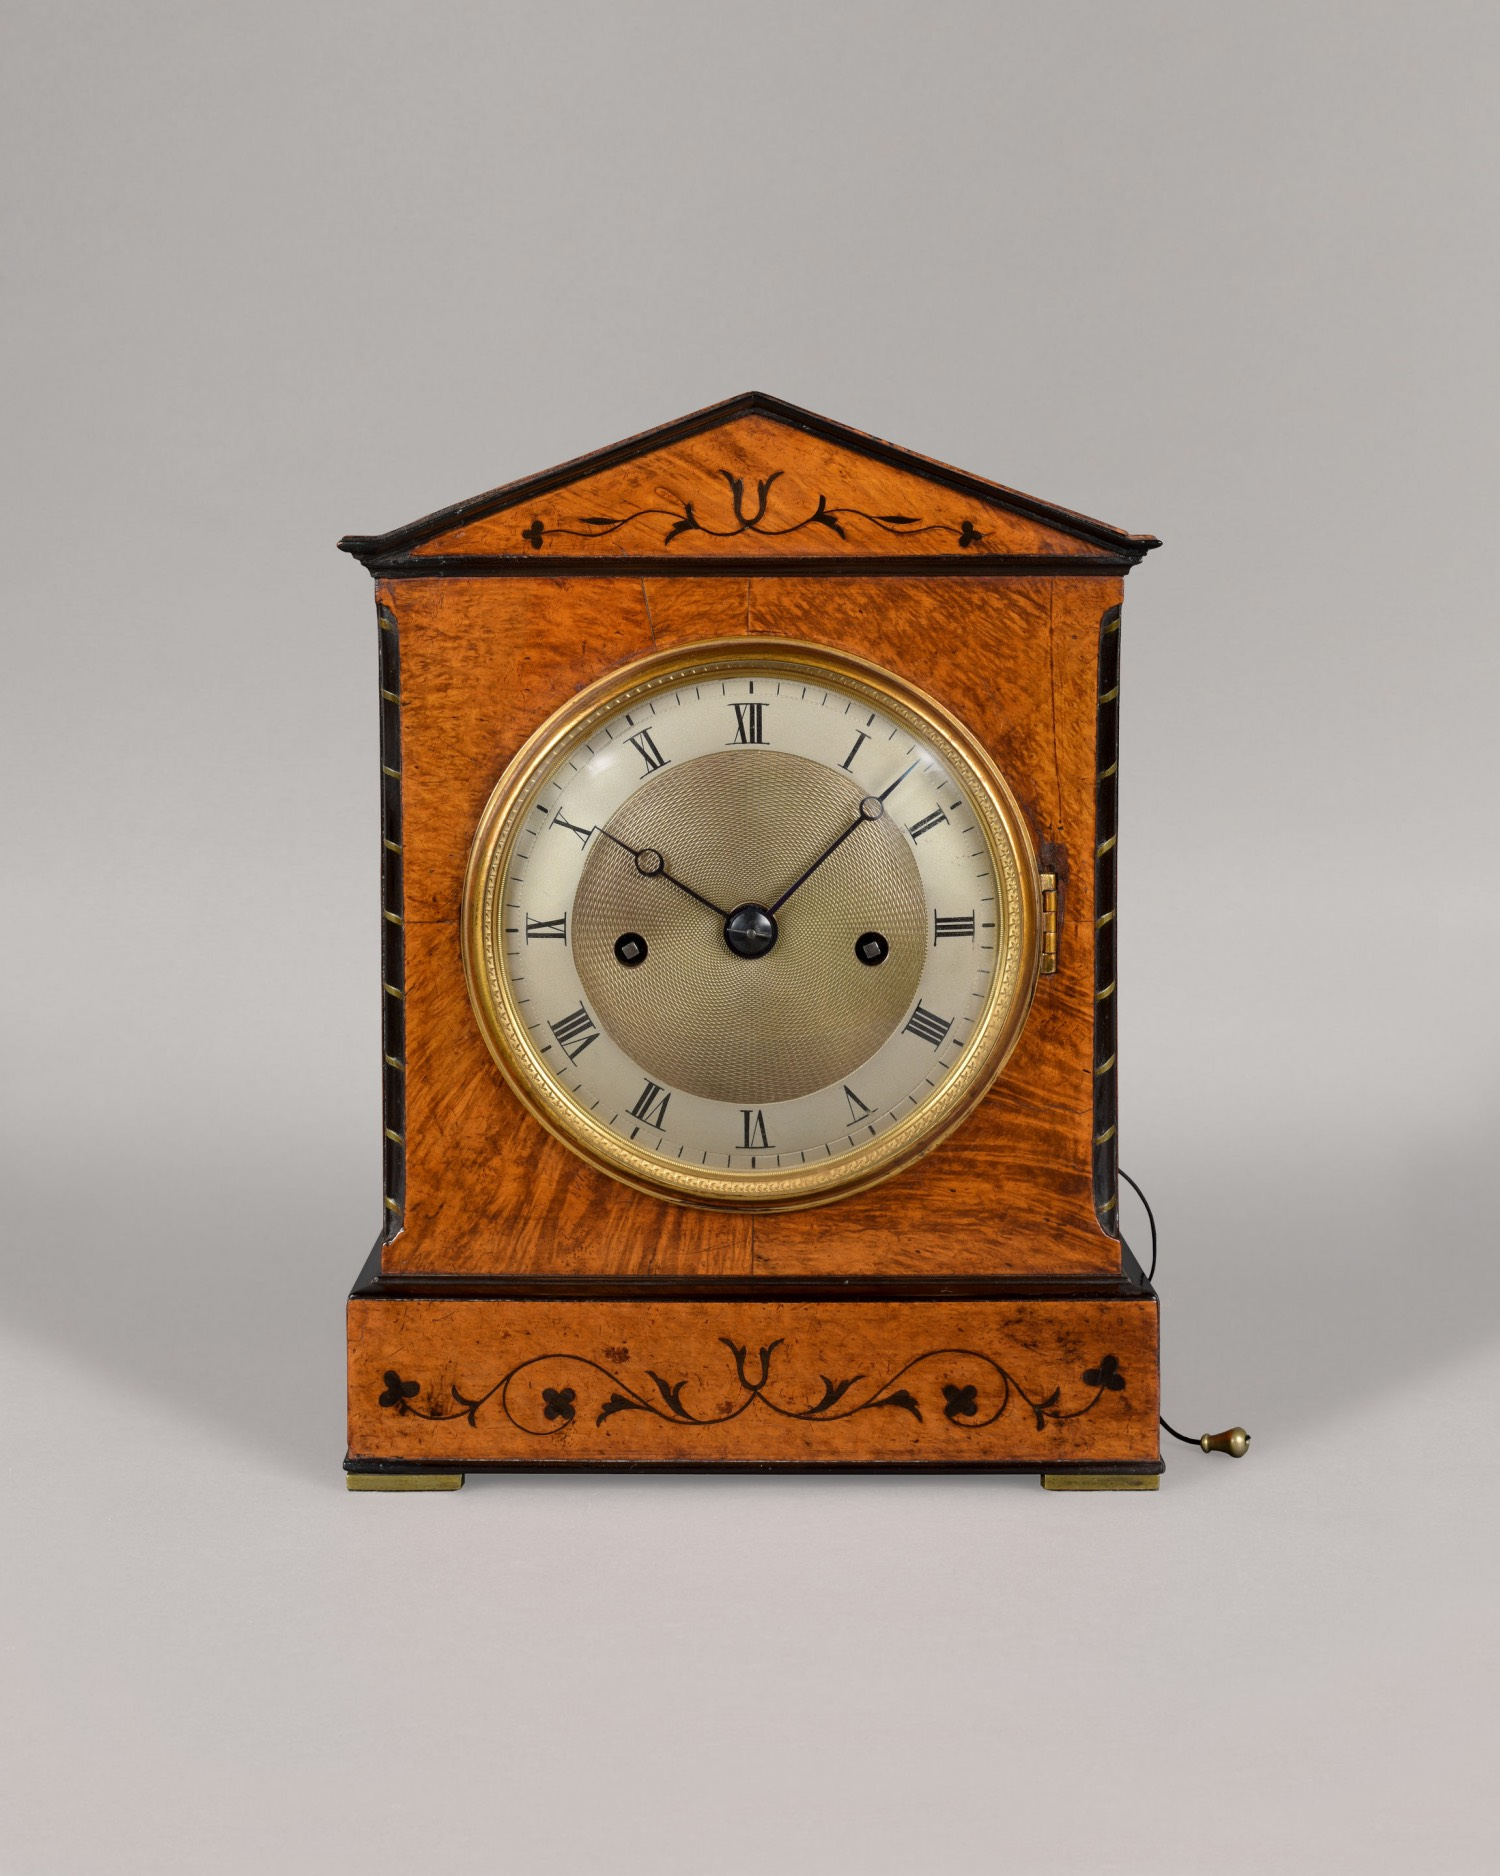 BARWISE. A FINE REGENCY PERIOD ARCHITECTURAL STRIKING MANTEL CLOCK.